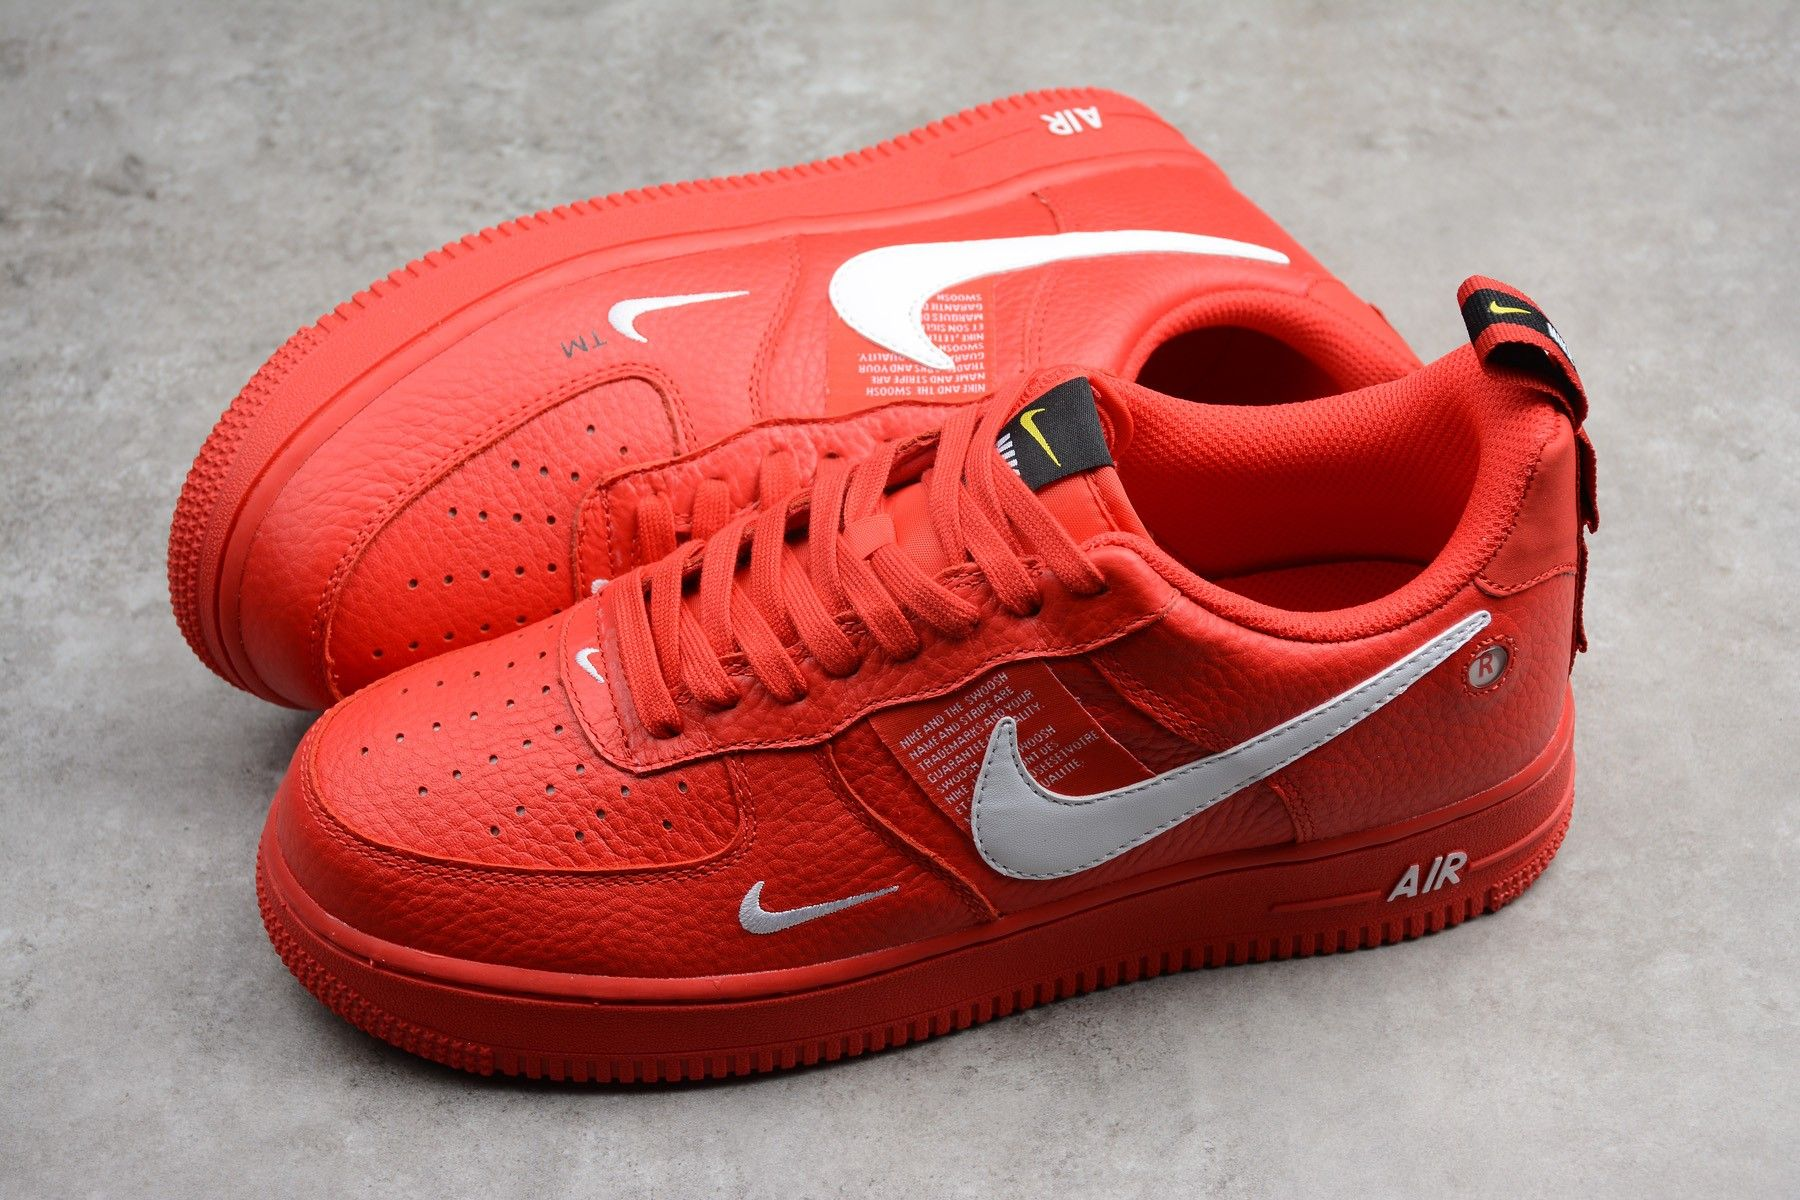 Pin by Henry Krause on Shoes in 2020 Nike air force